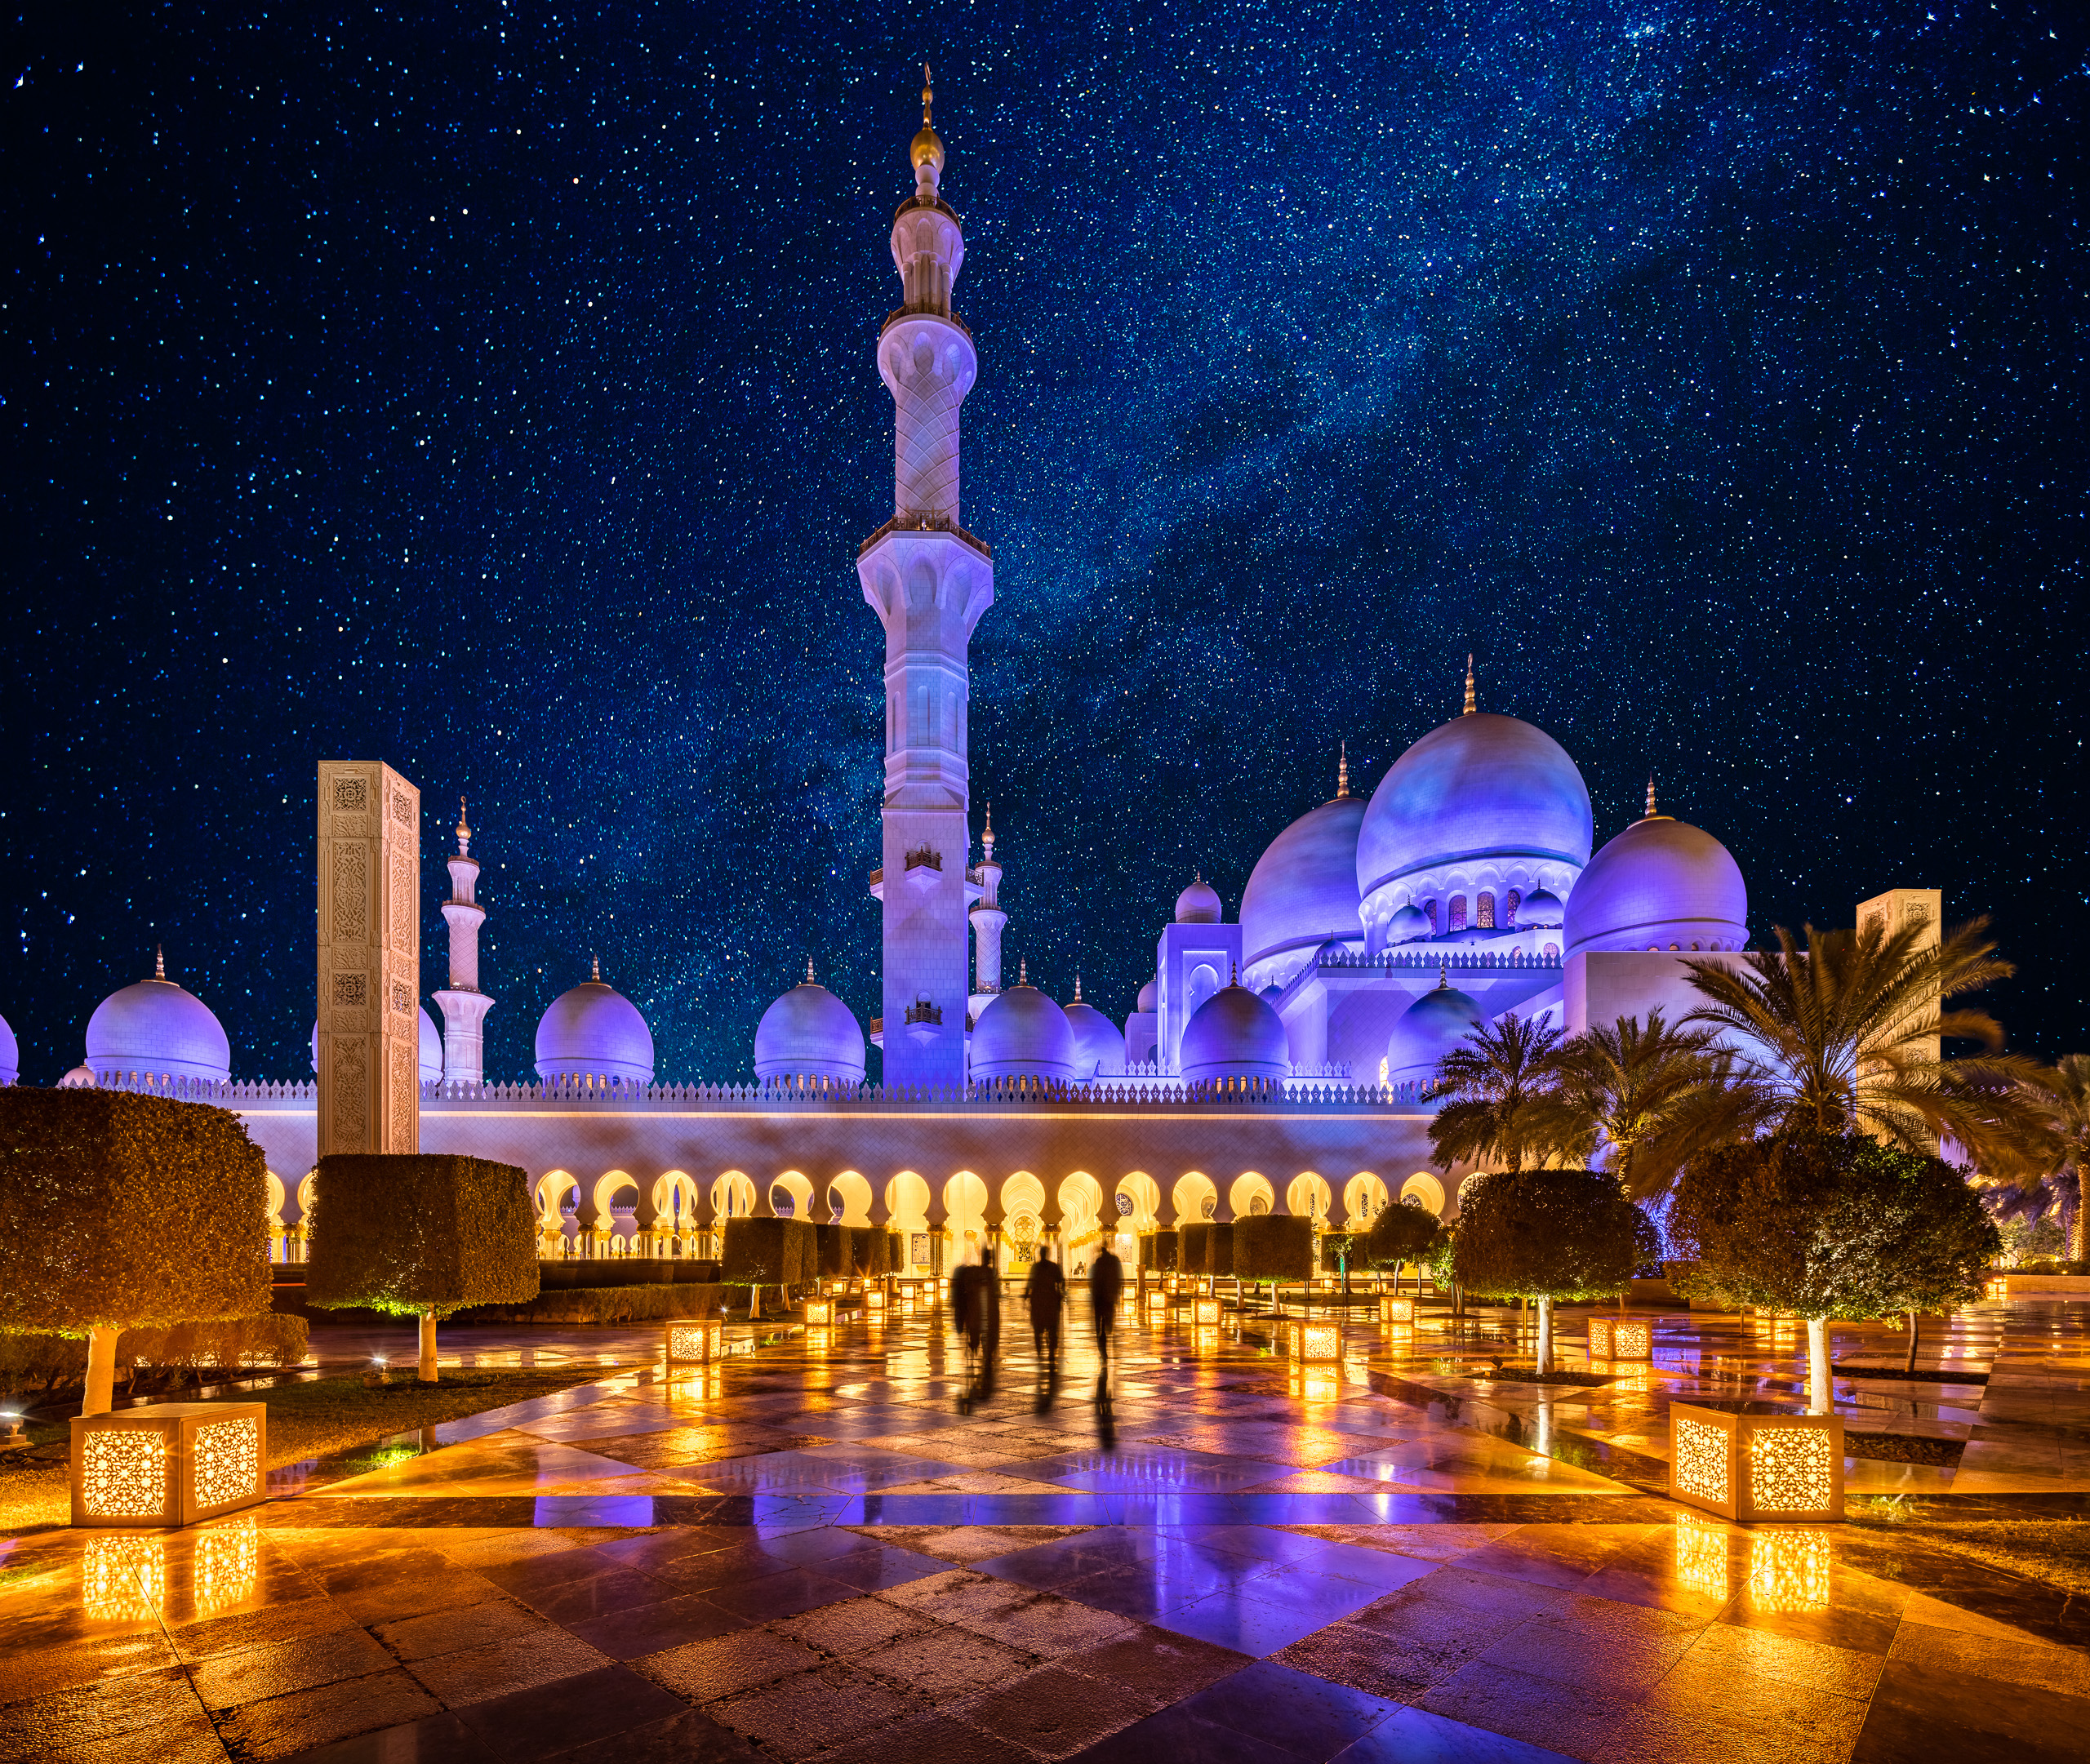 01-Photographer-Andreas-Martin-Stuttgart-Photography-Abu-Dhabi-Dubai-mosque-sheik-zayed-szgmc-architecture-sky-night